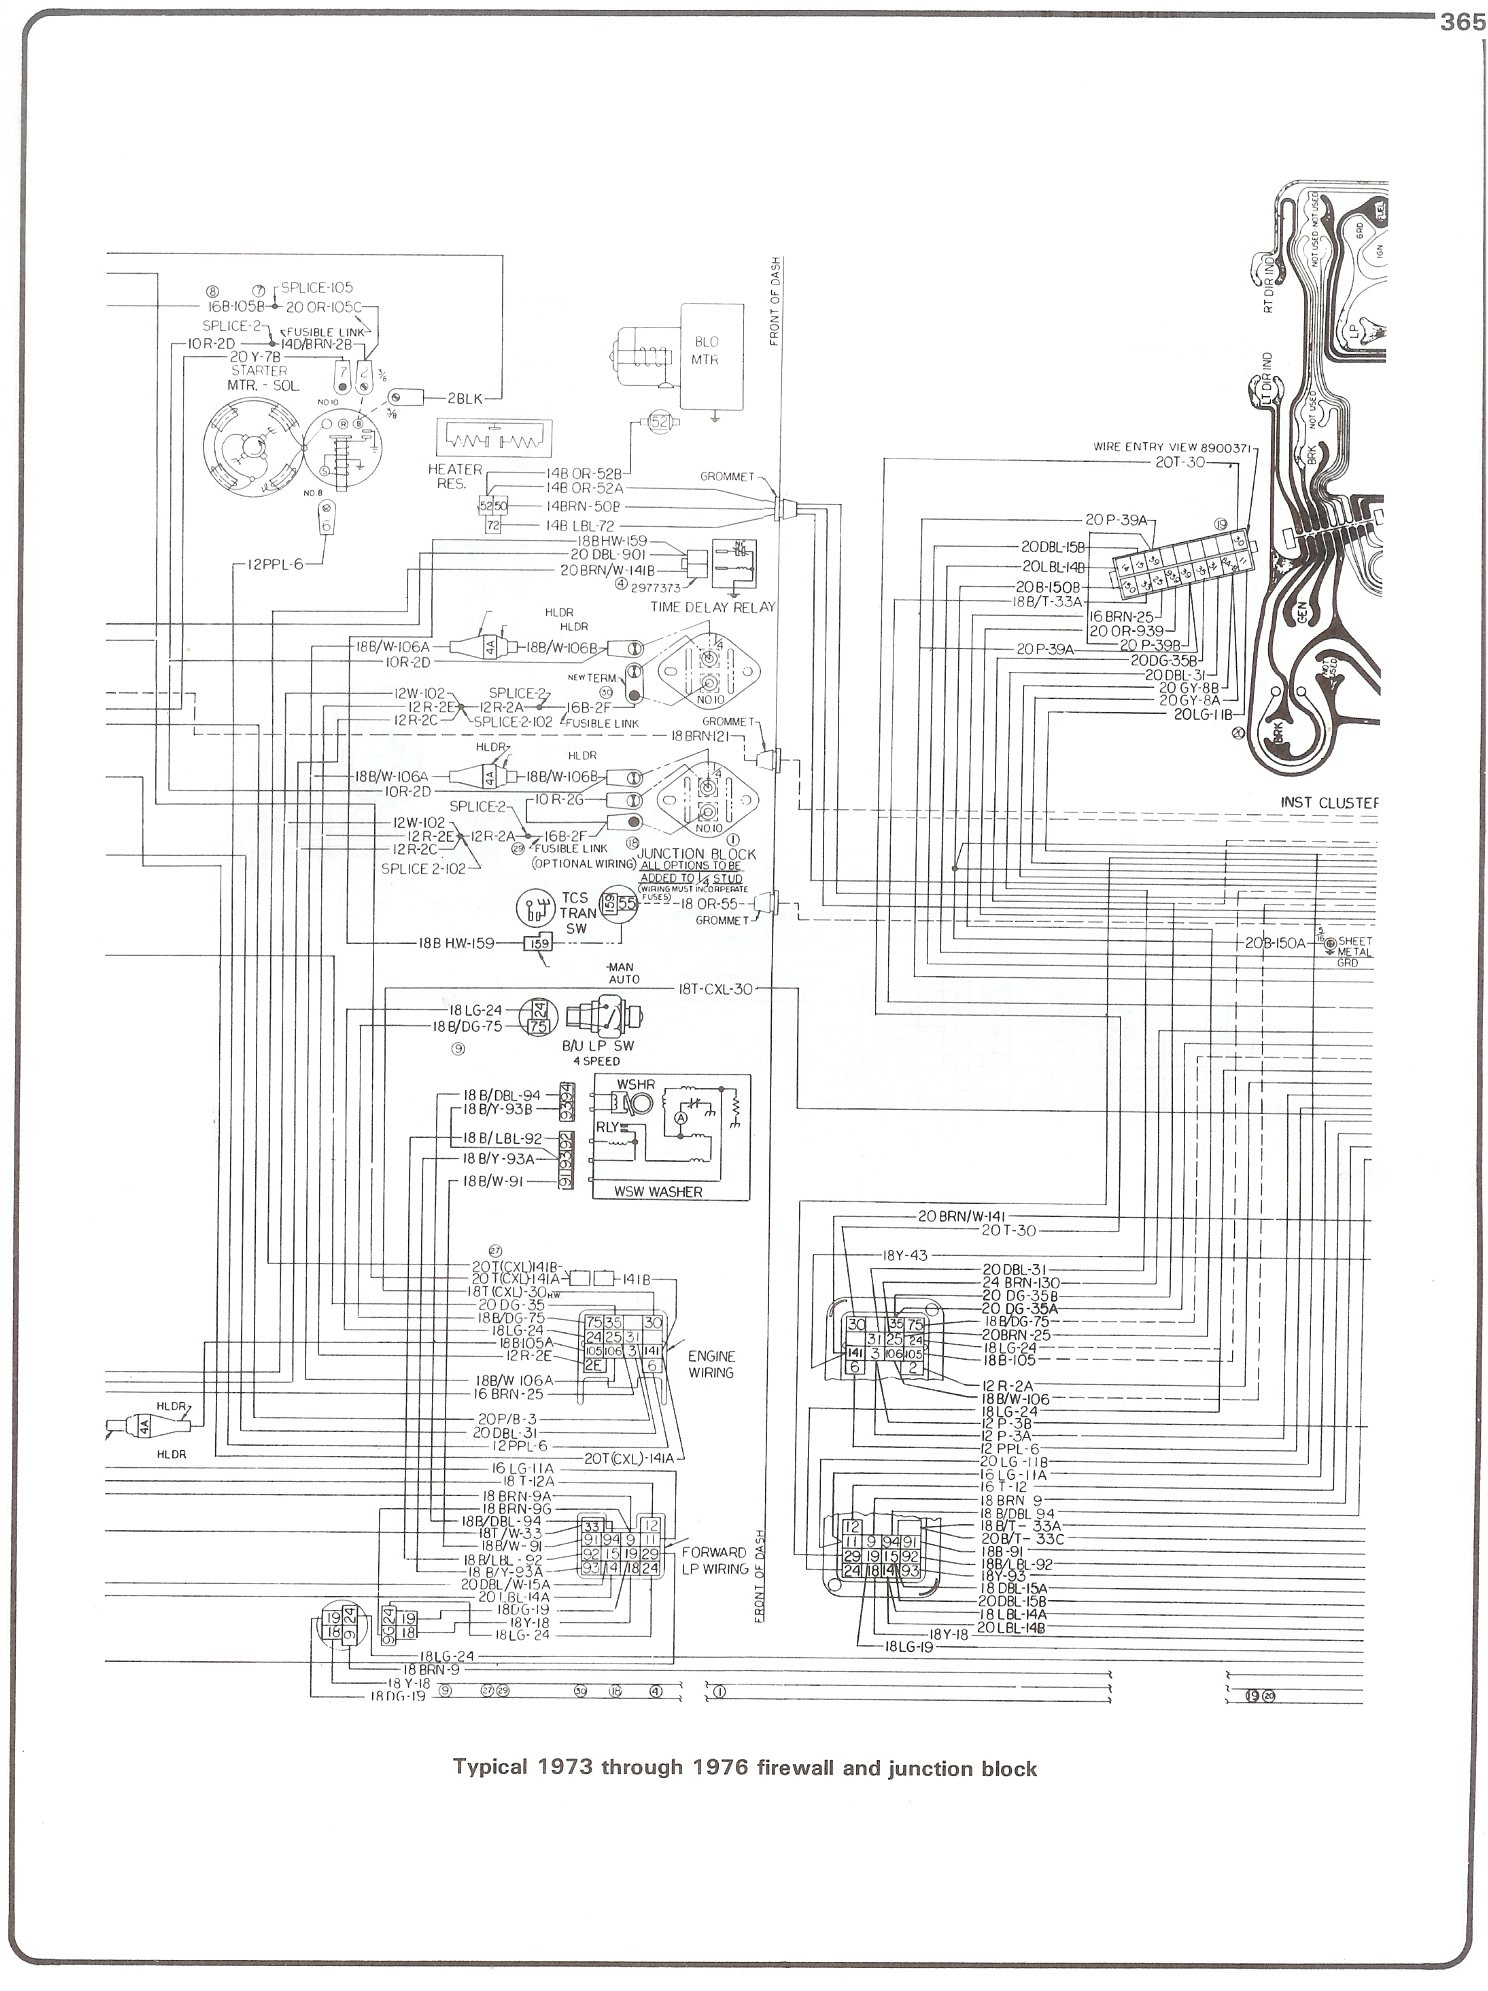 73 76_firewall_junct complete 73 87 wiring diagrams 1978 chevy truck fuse box diagram at webbmarketing.co